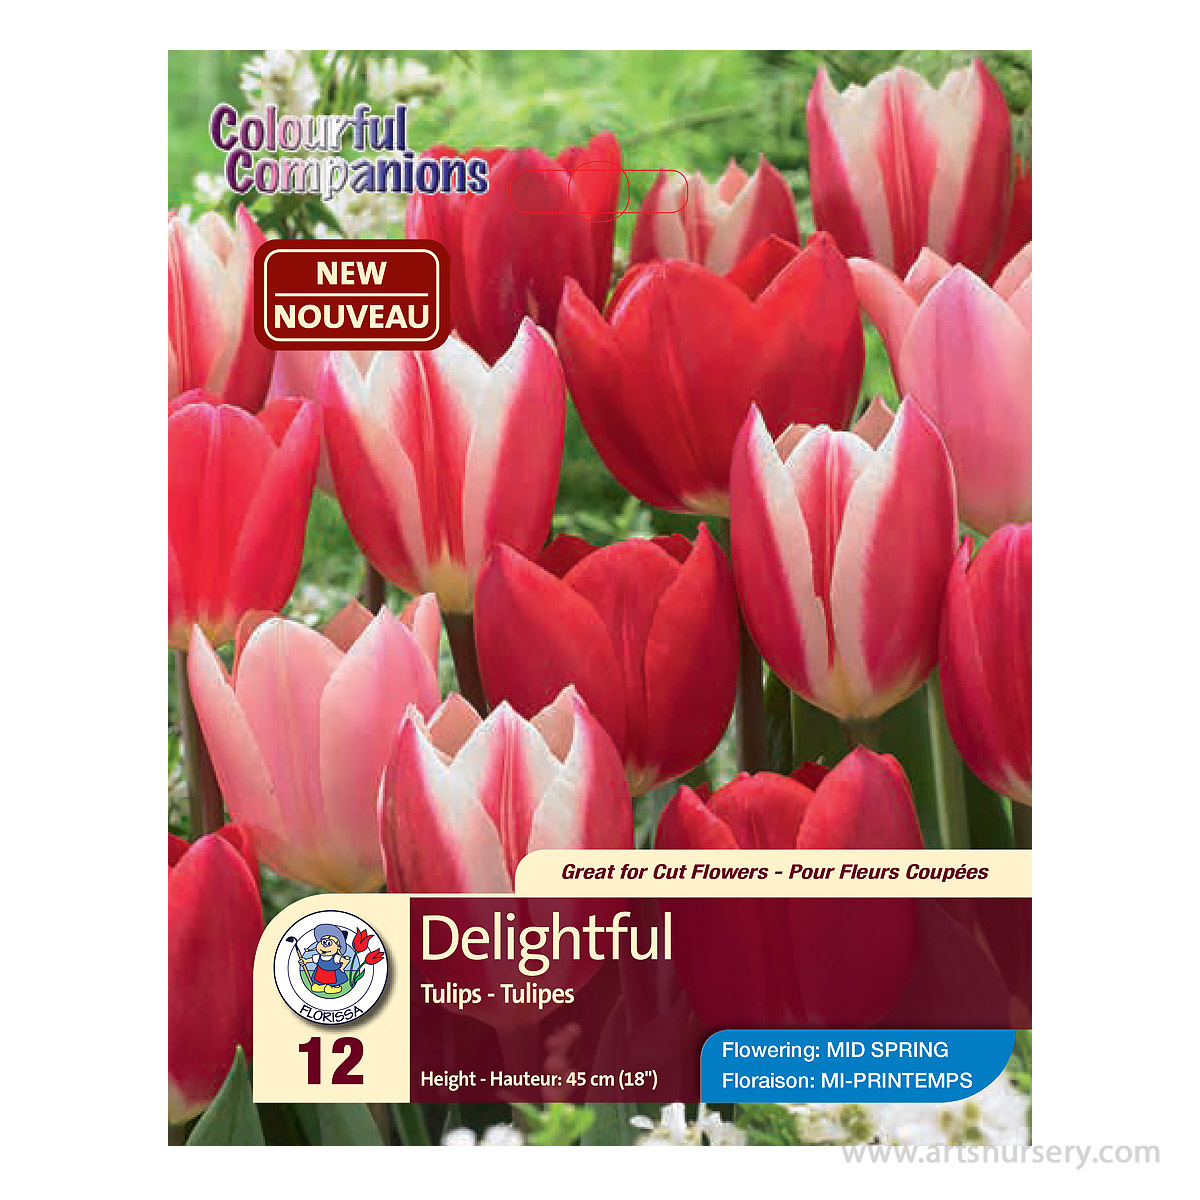 Colourful Companions Tulipa 'Delight Mix' Bulbs